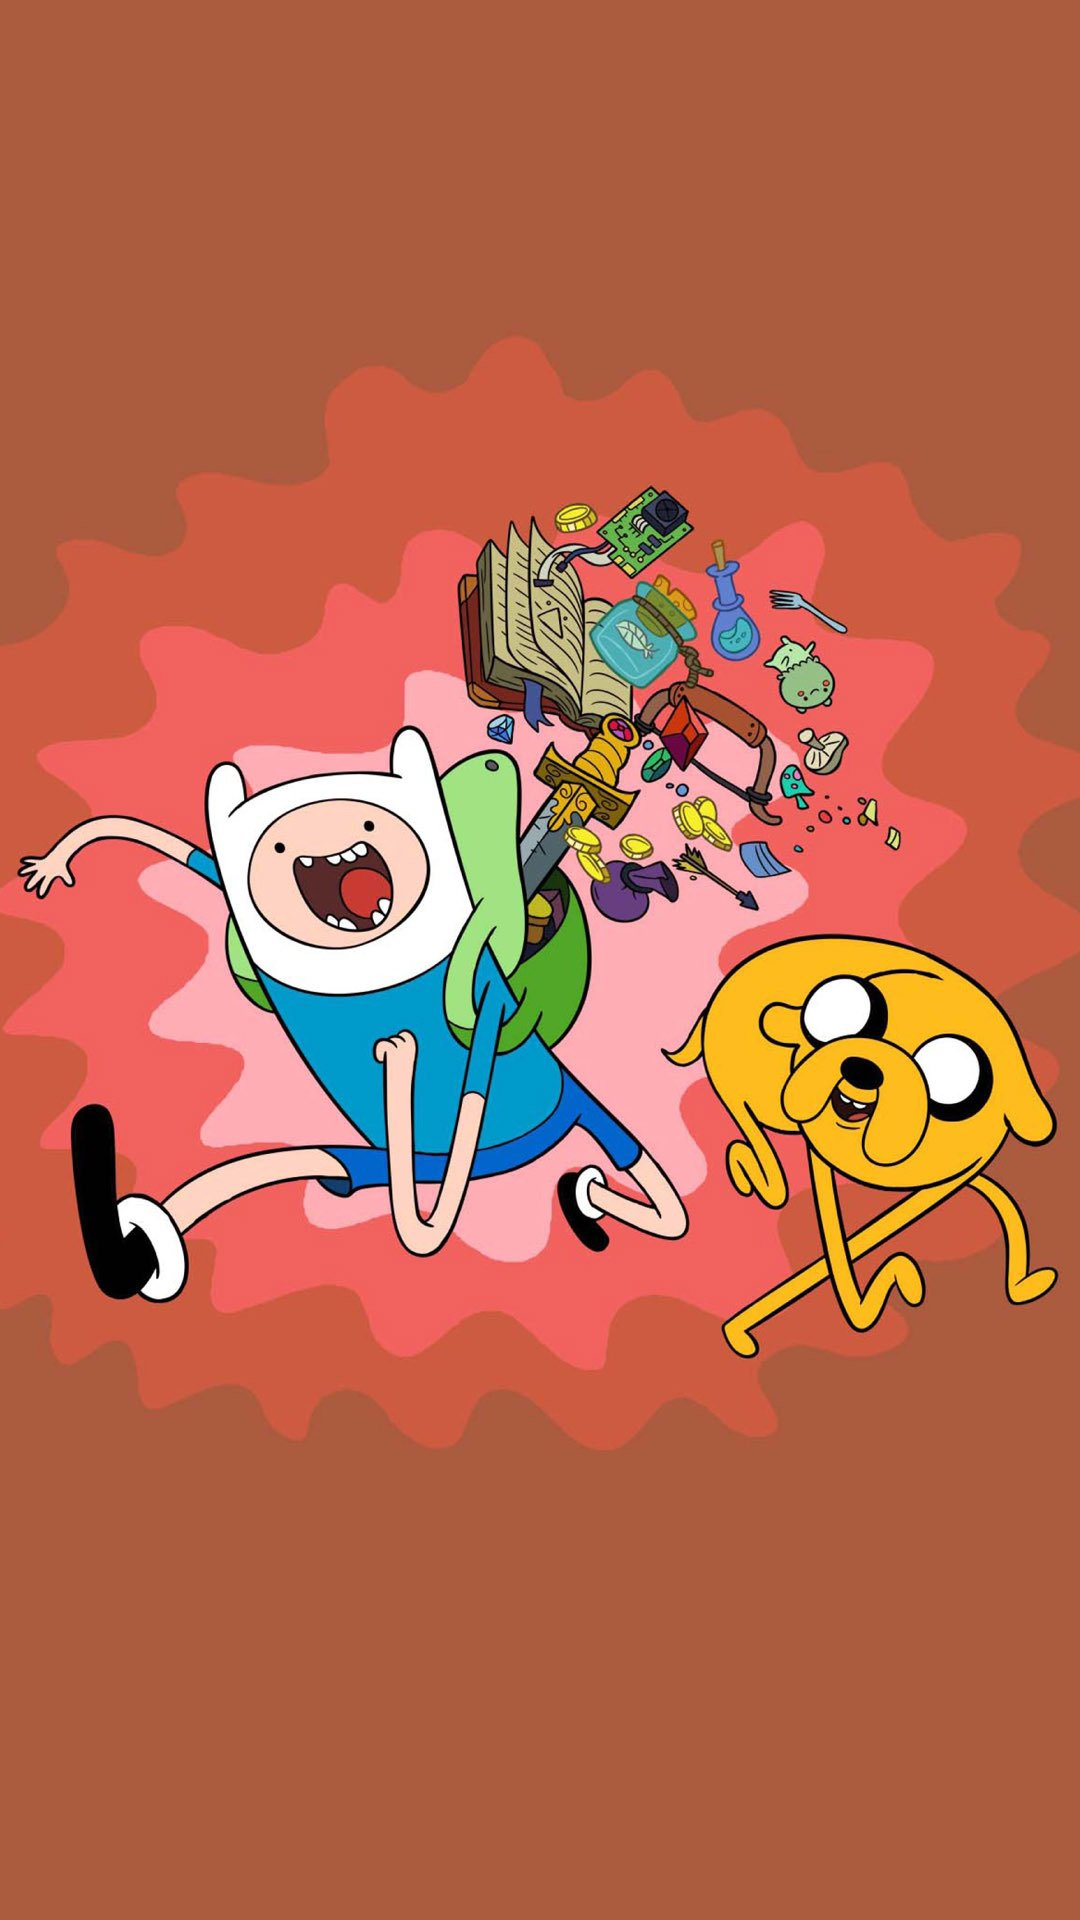 hd finn jake adventure time wallpapers for mobile 720x1280 1080x1920